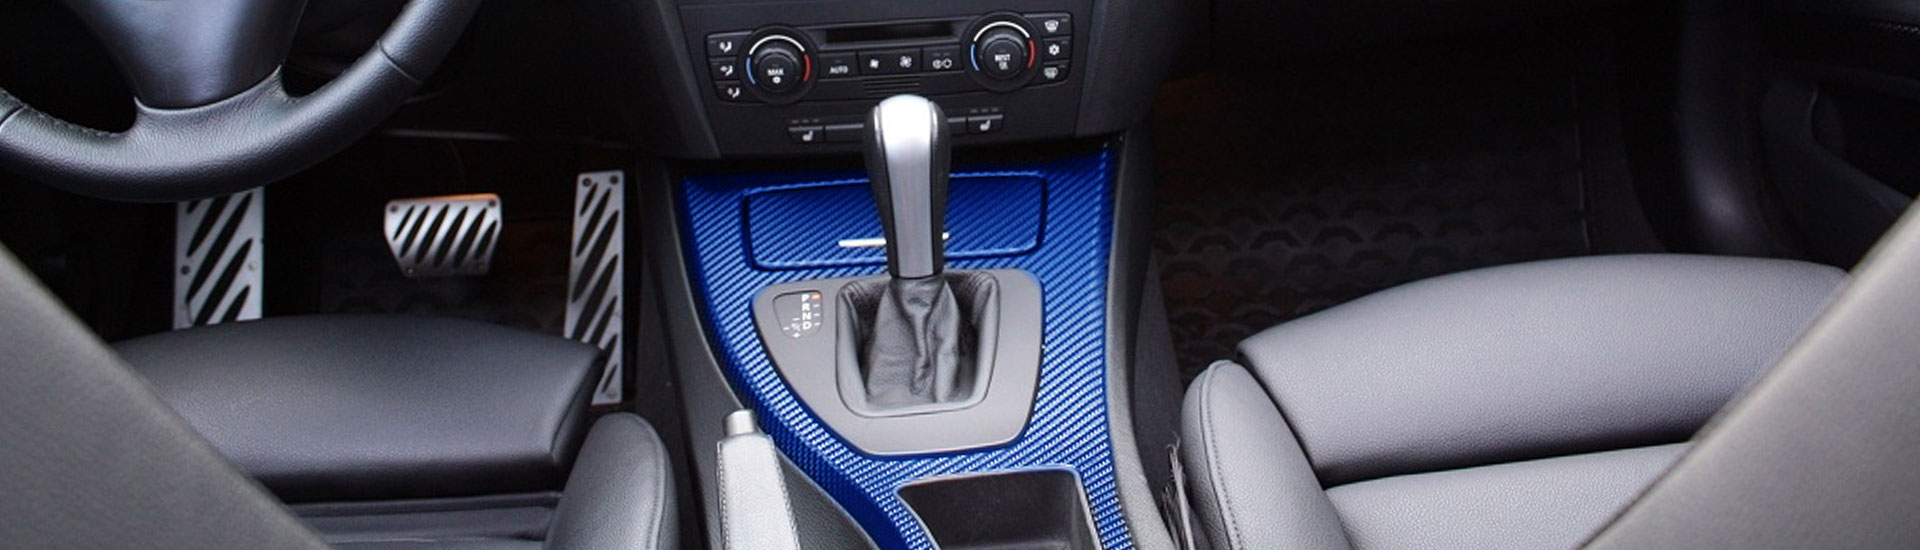 Blue carbon fiber dash kit